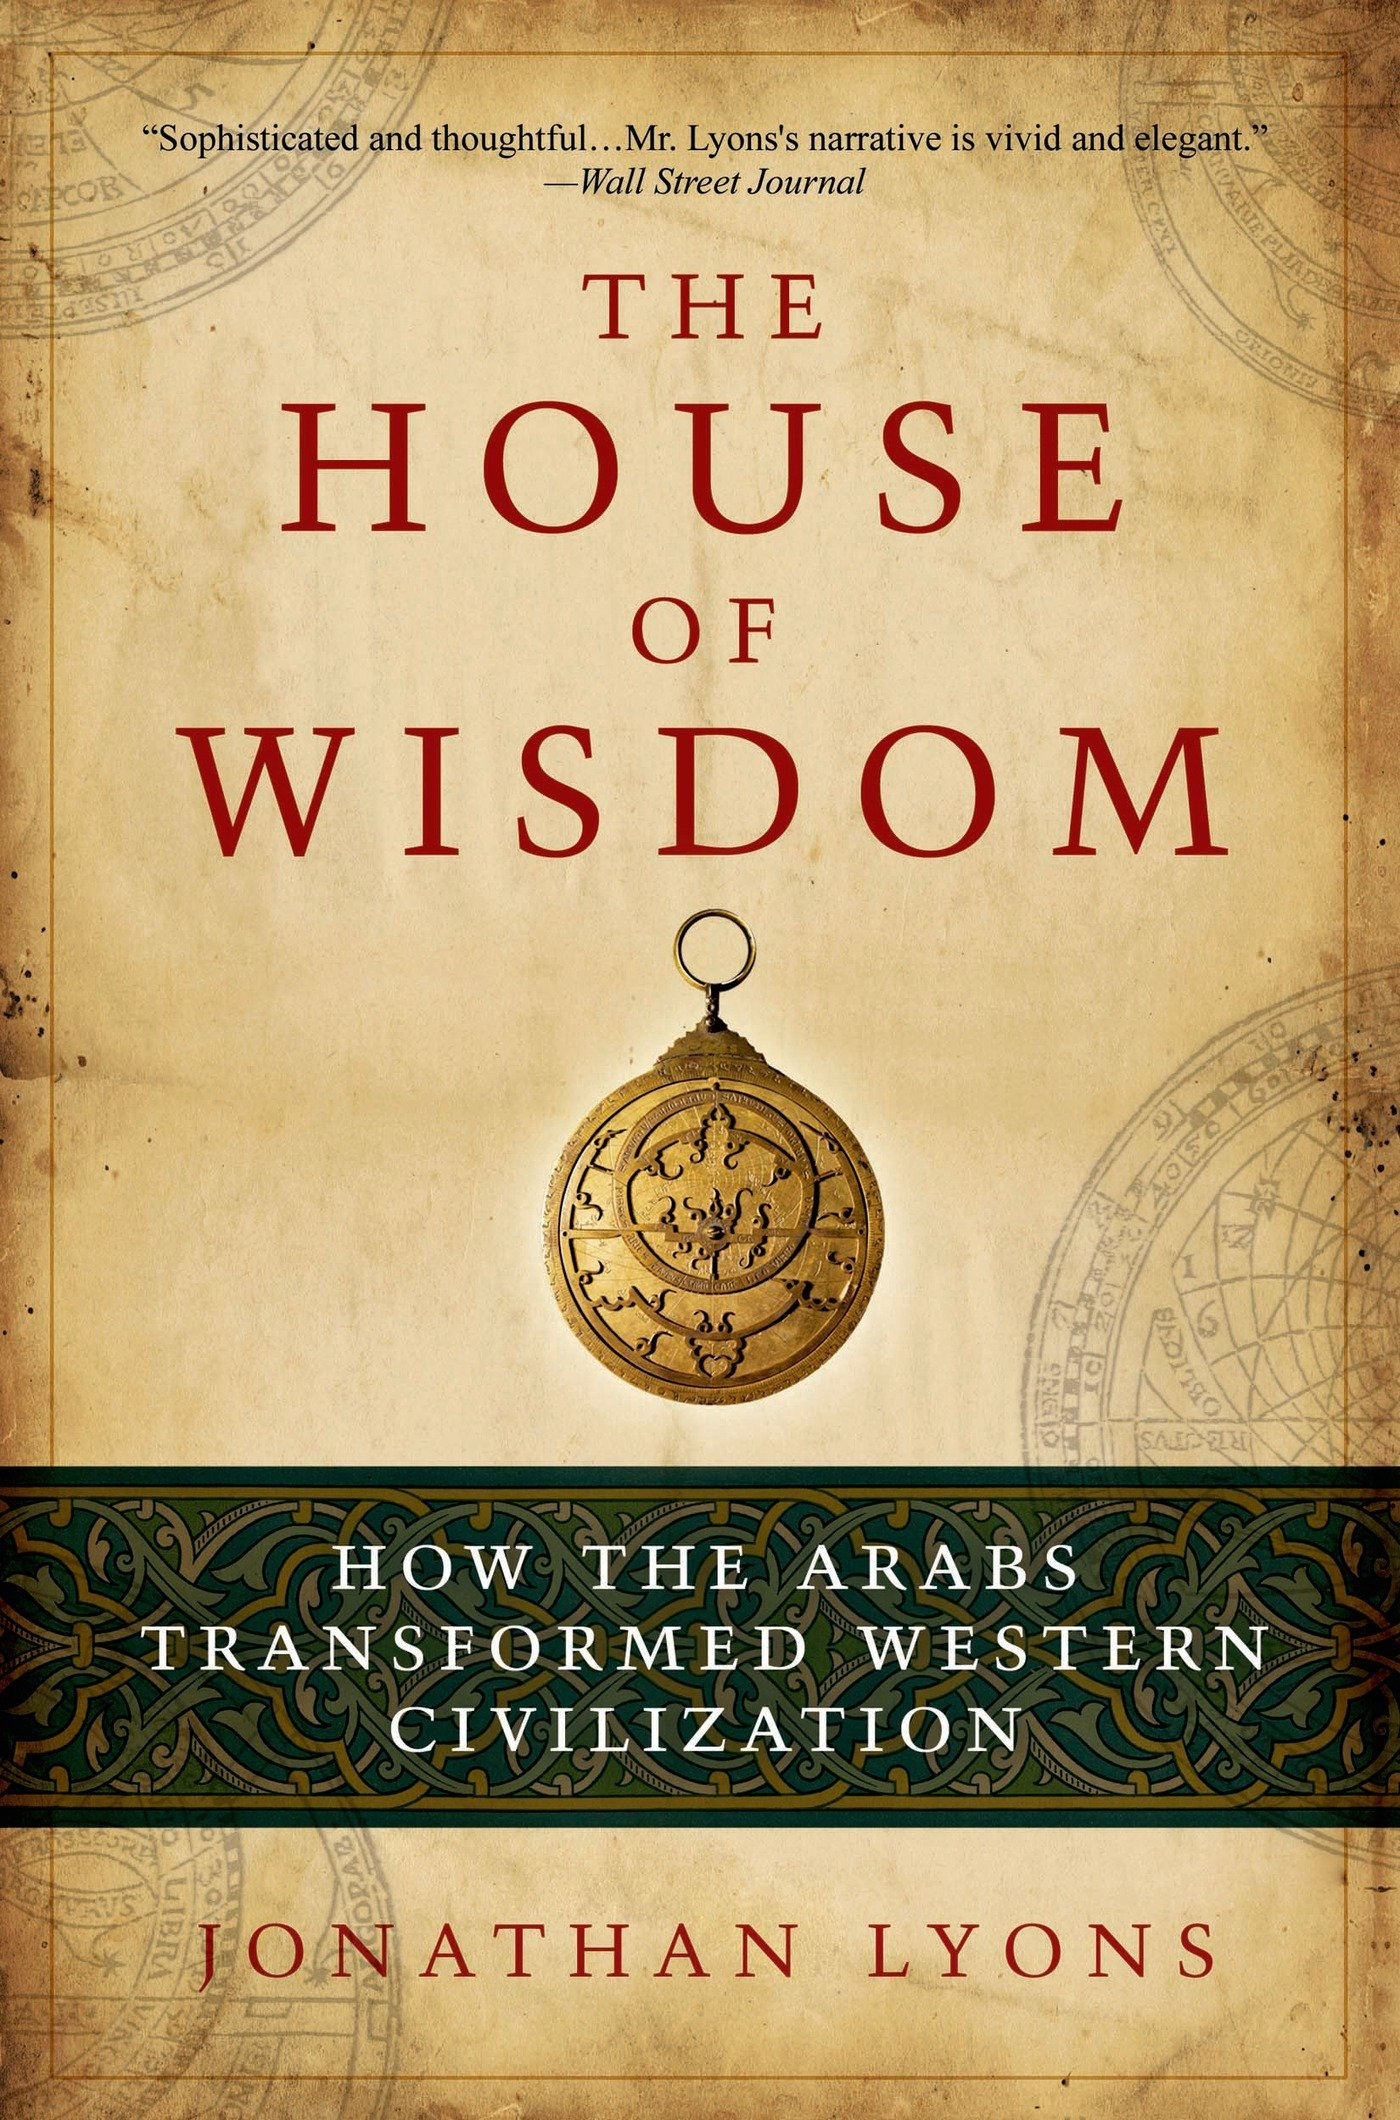 The House of Wisdom: Baghdad's Intellectual Powerhouse ...